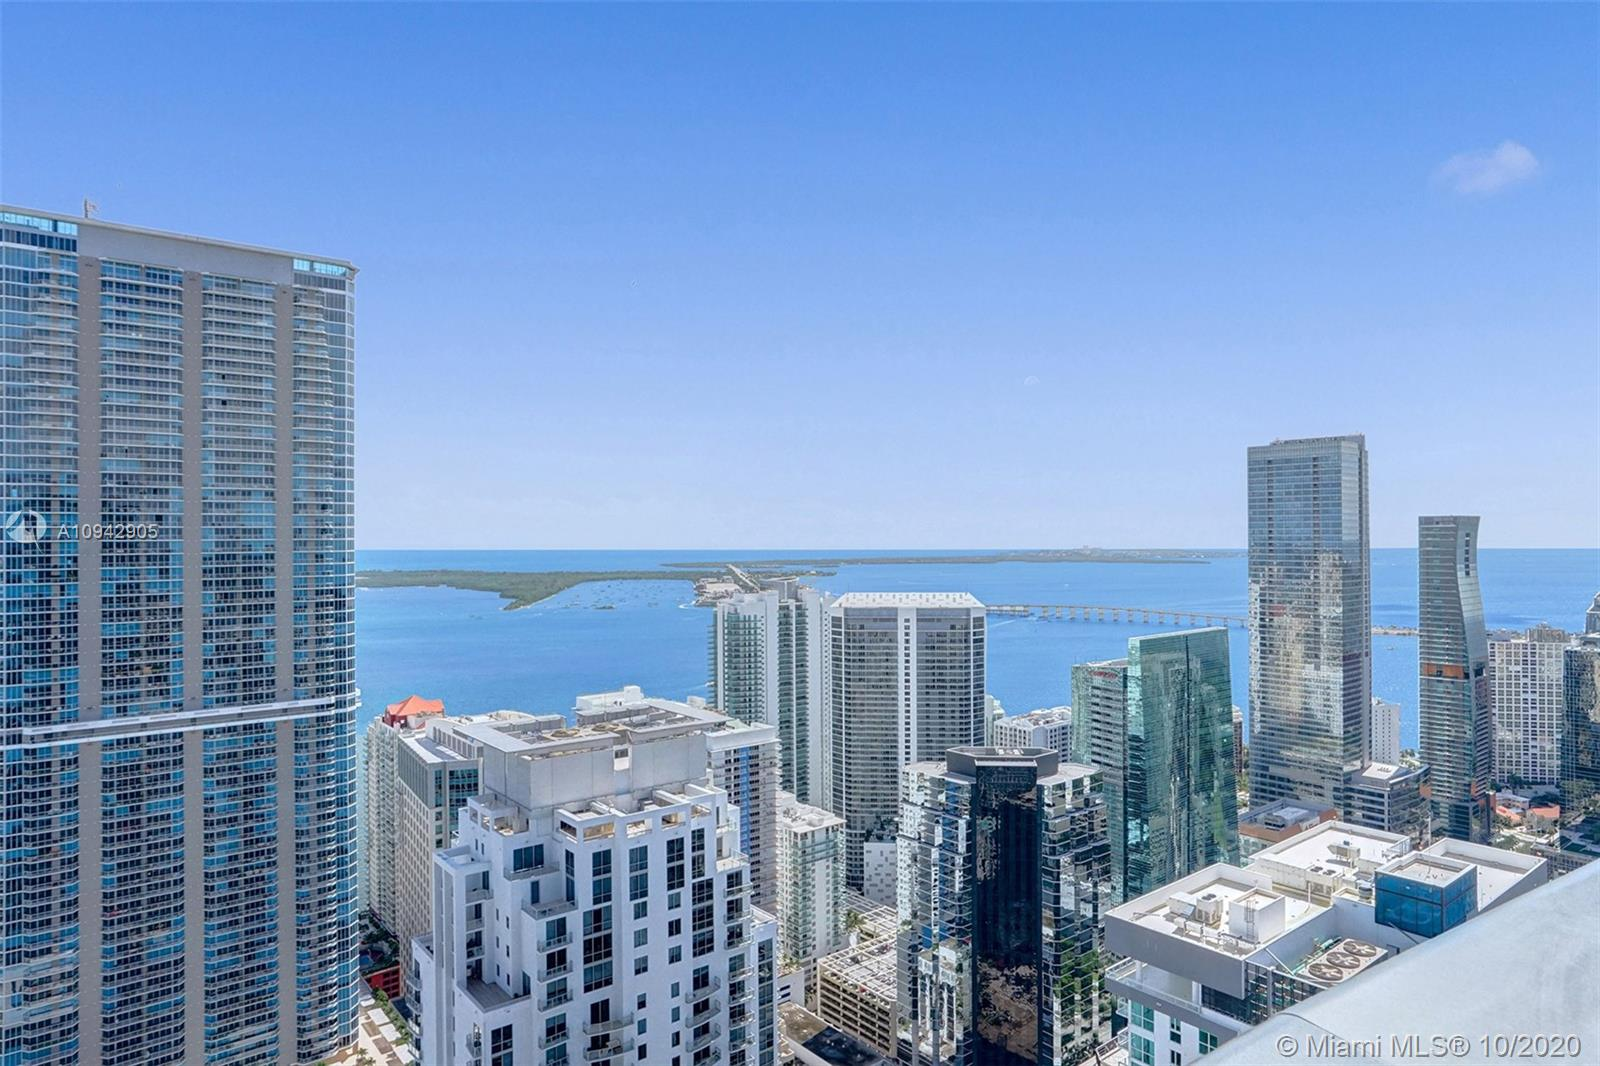 BRICKELL FLATIRON CONDO UNIT PH6003 PHOTO